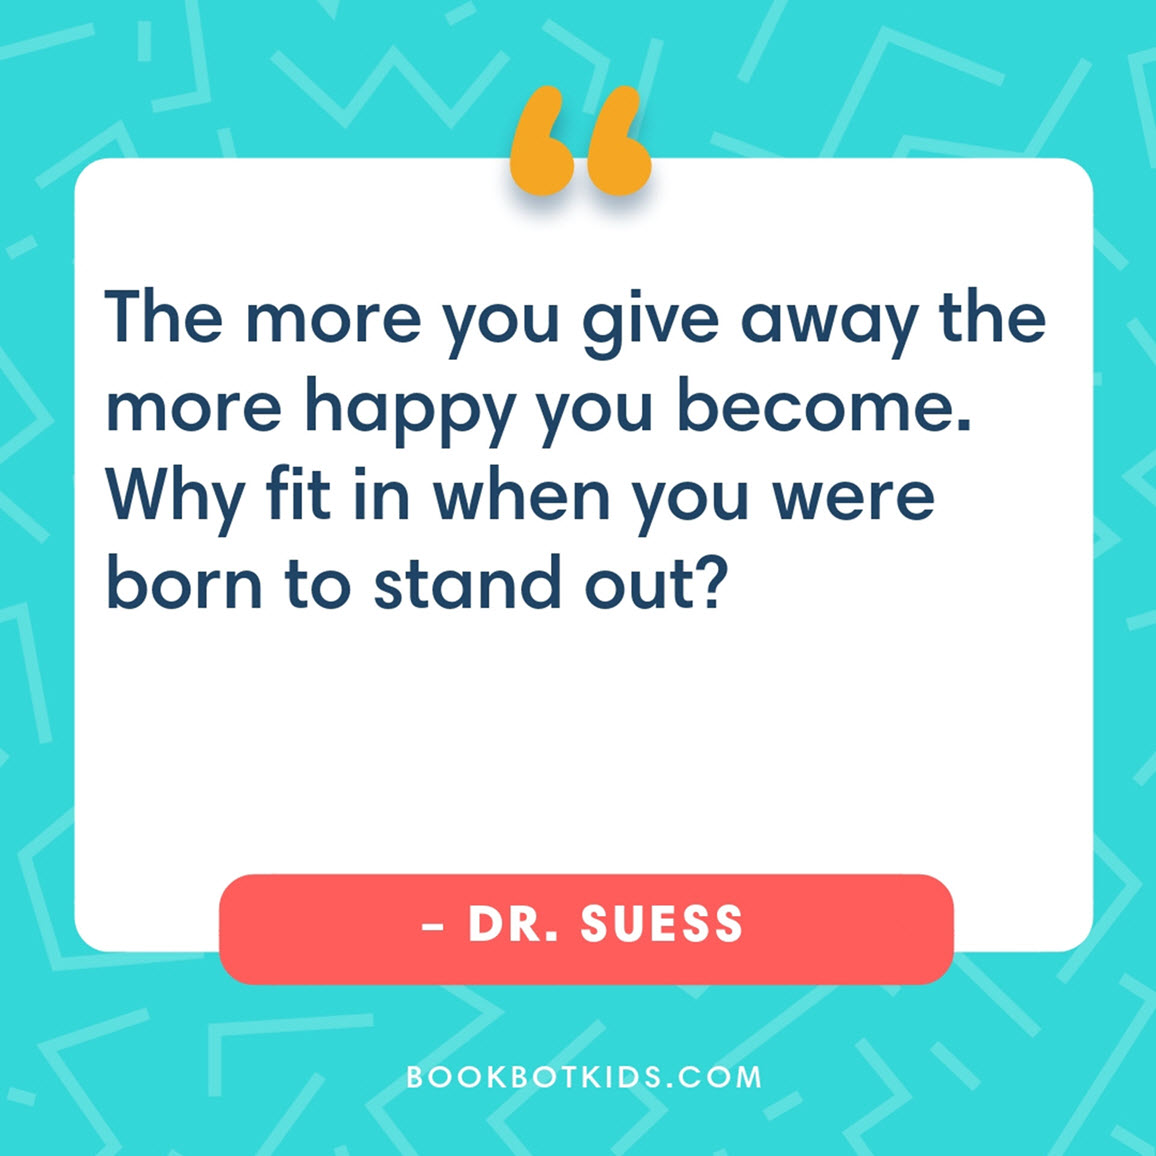 The more you give away the more happy you become. Why fit in when you were born to stand out? – Dr. Suess